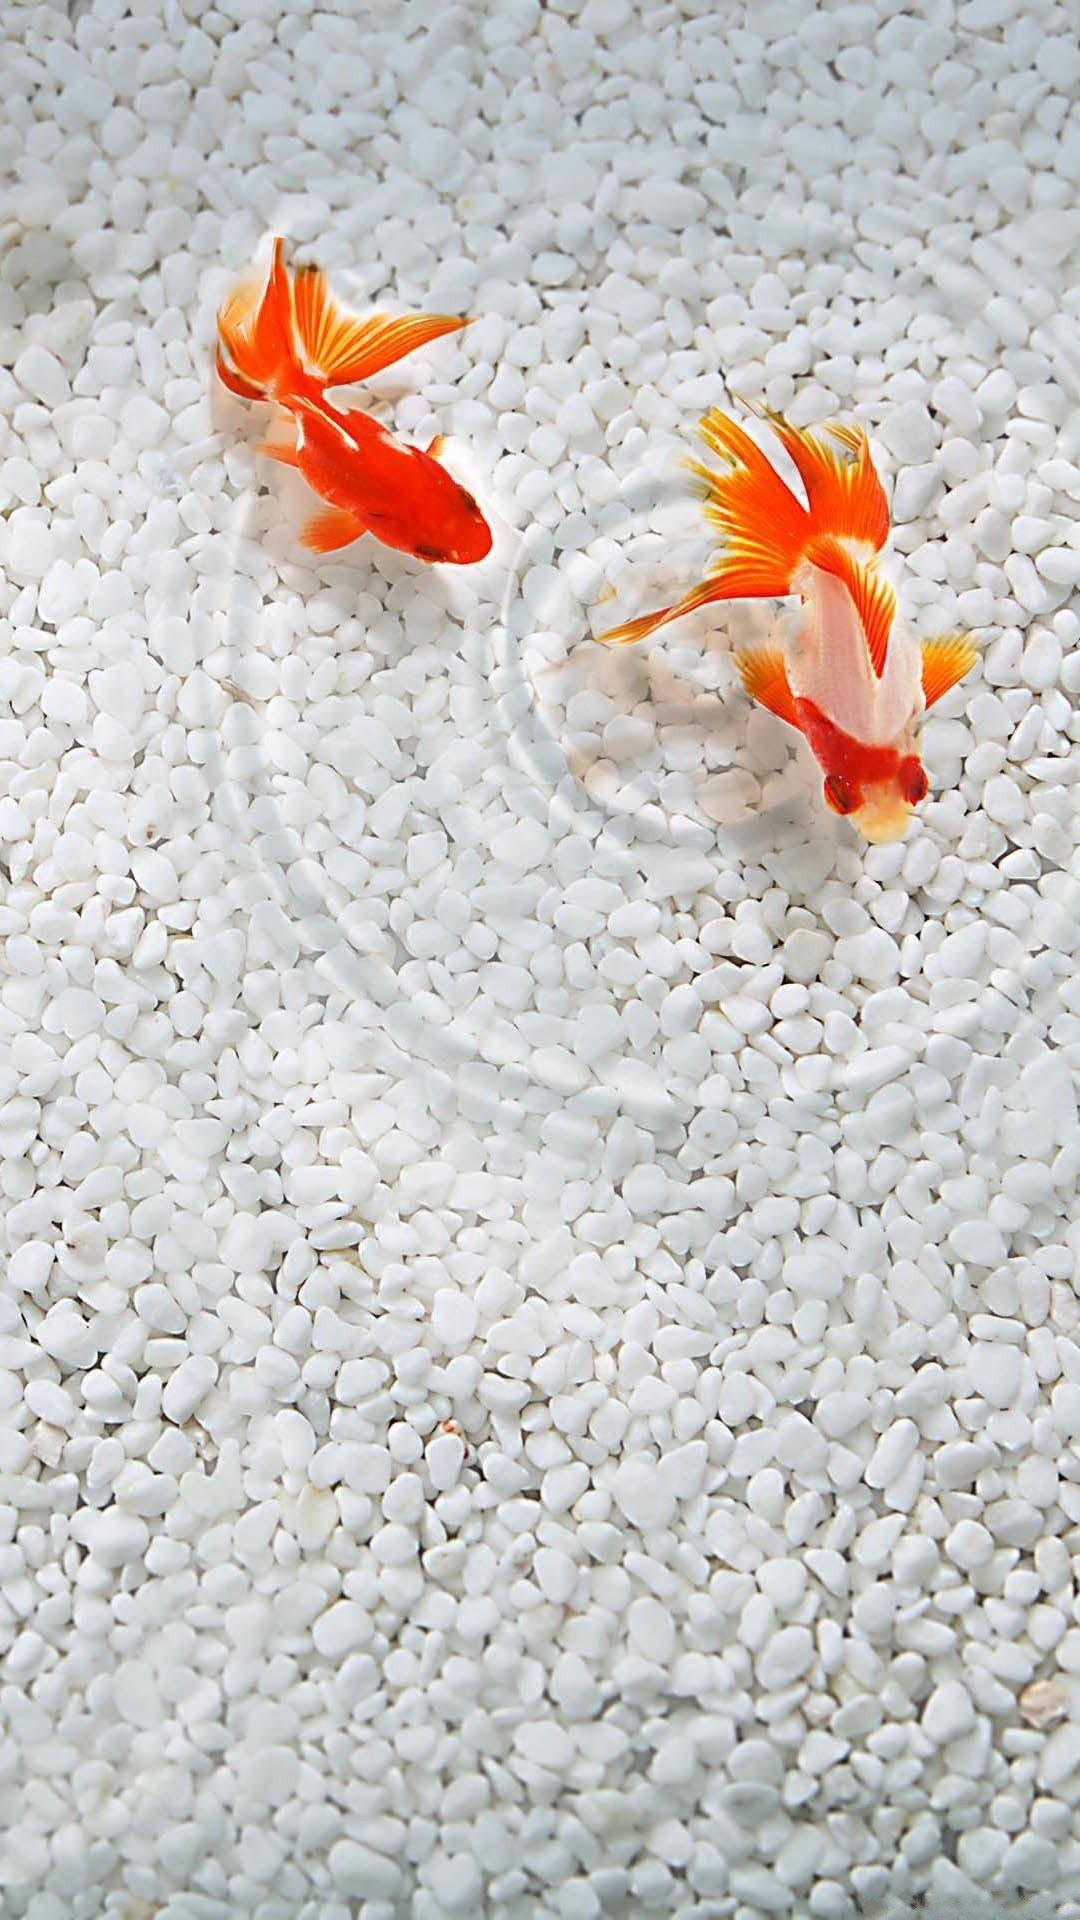 Cute Realistic Gold Fish IPhone Wallpaper Tap To See More